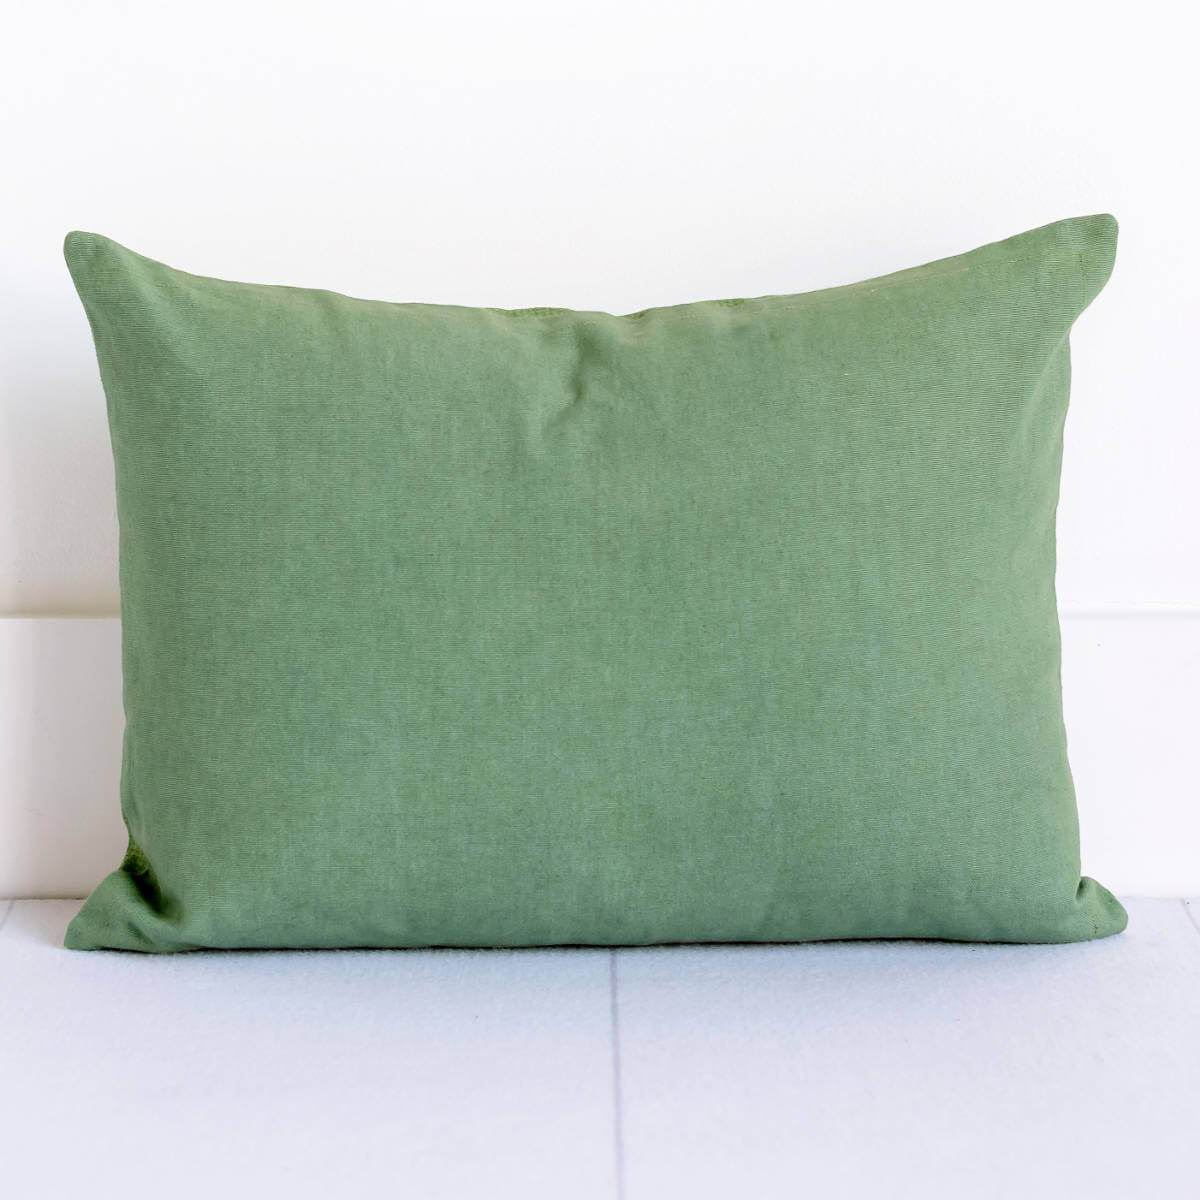 Pomegranate Lumbar Pillow - Hunt